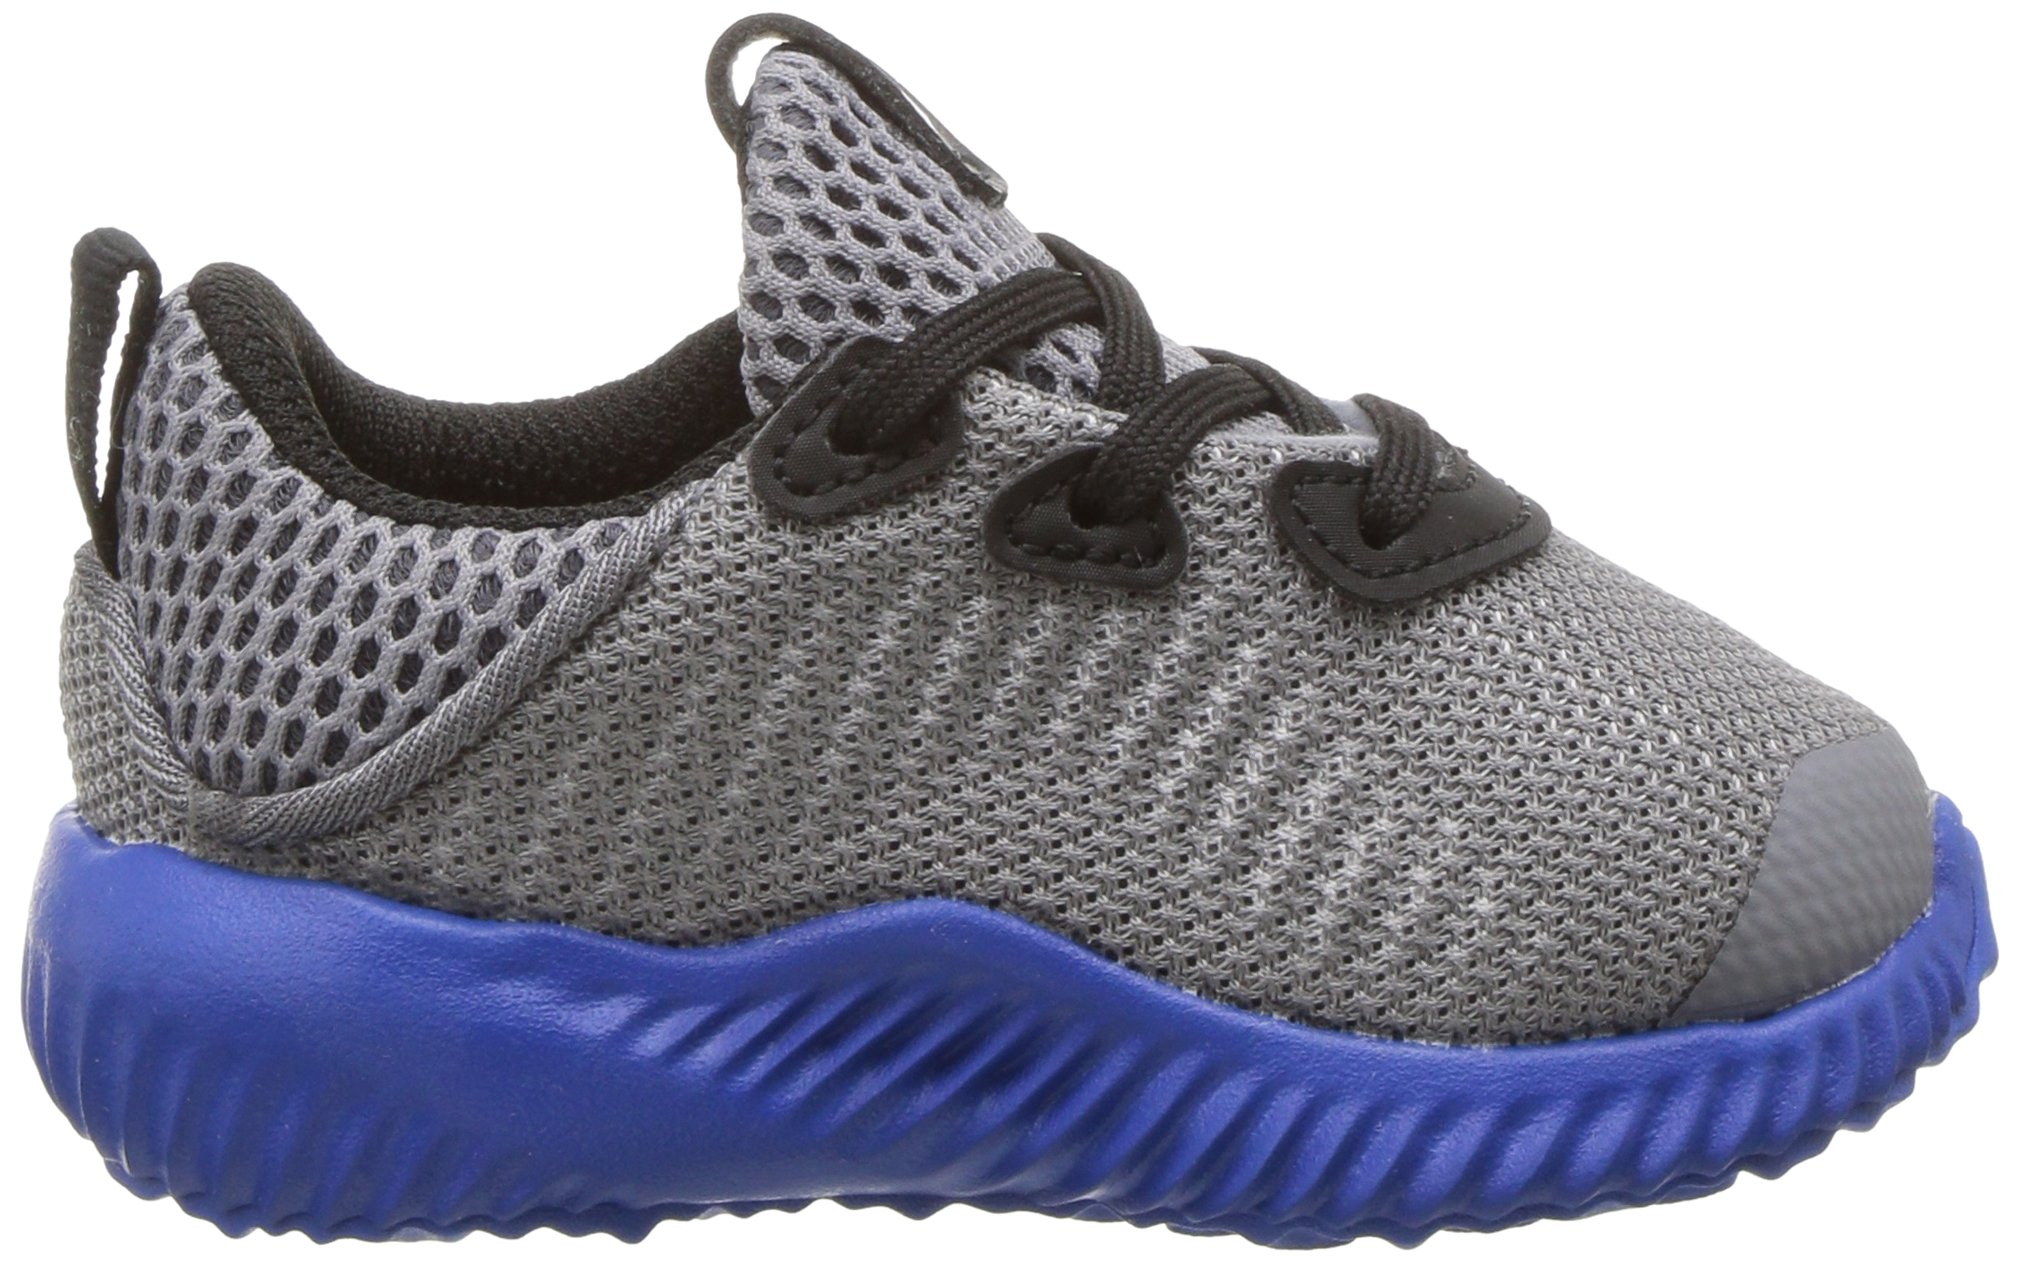 adidas Kids' Alphabounce Sneaker, Grey/Light Onix/Satellite, 7 M US Toddler by adidas (Image #7)